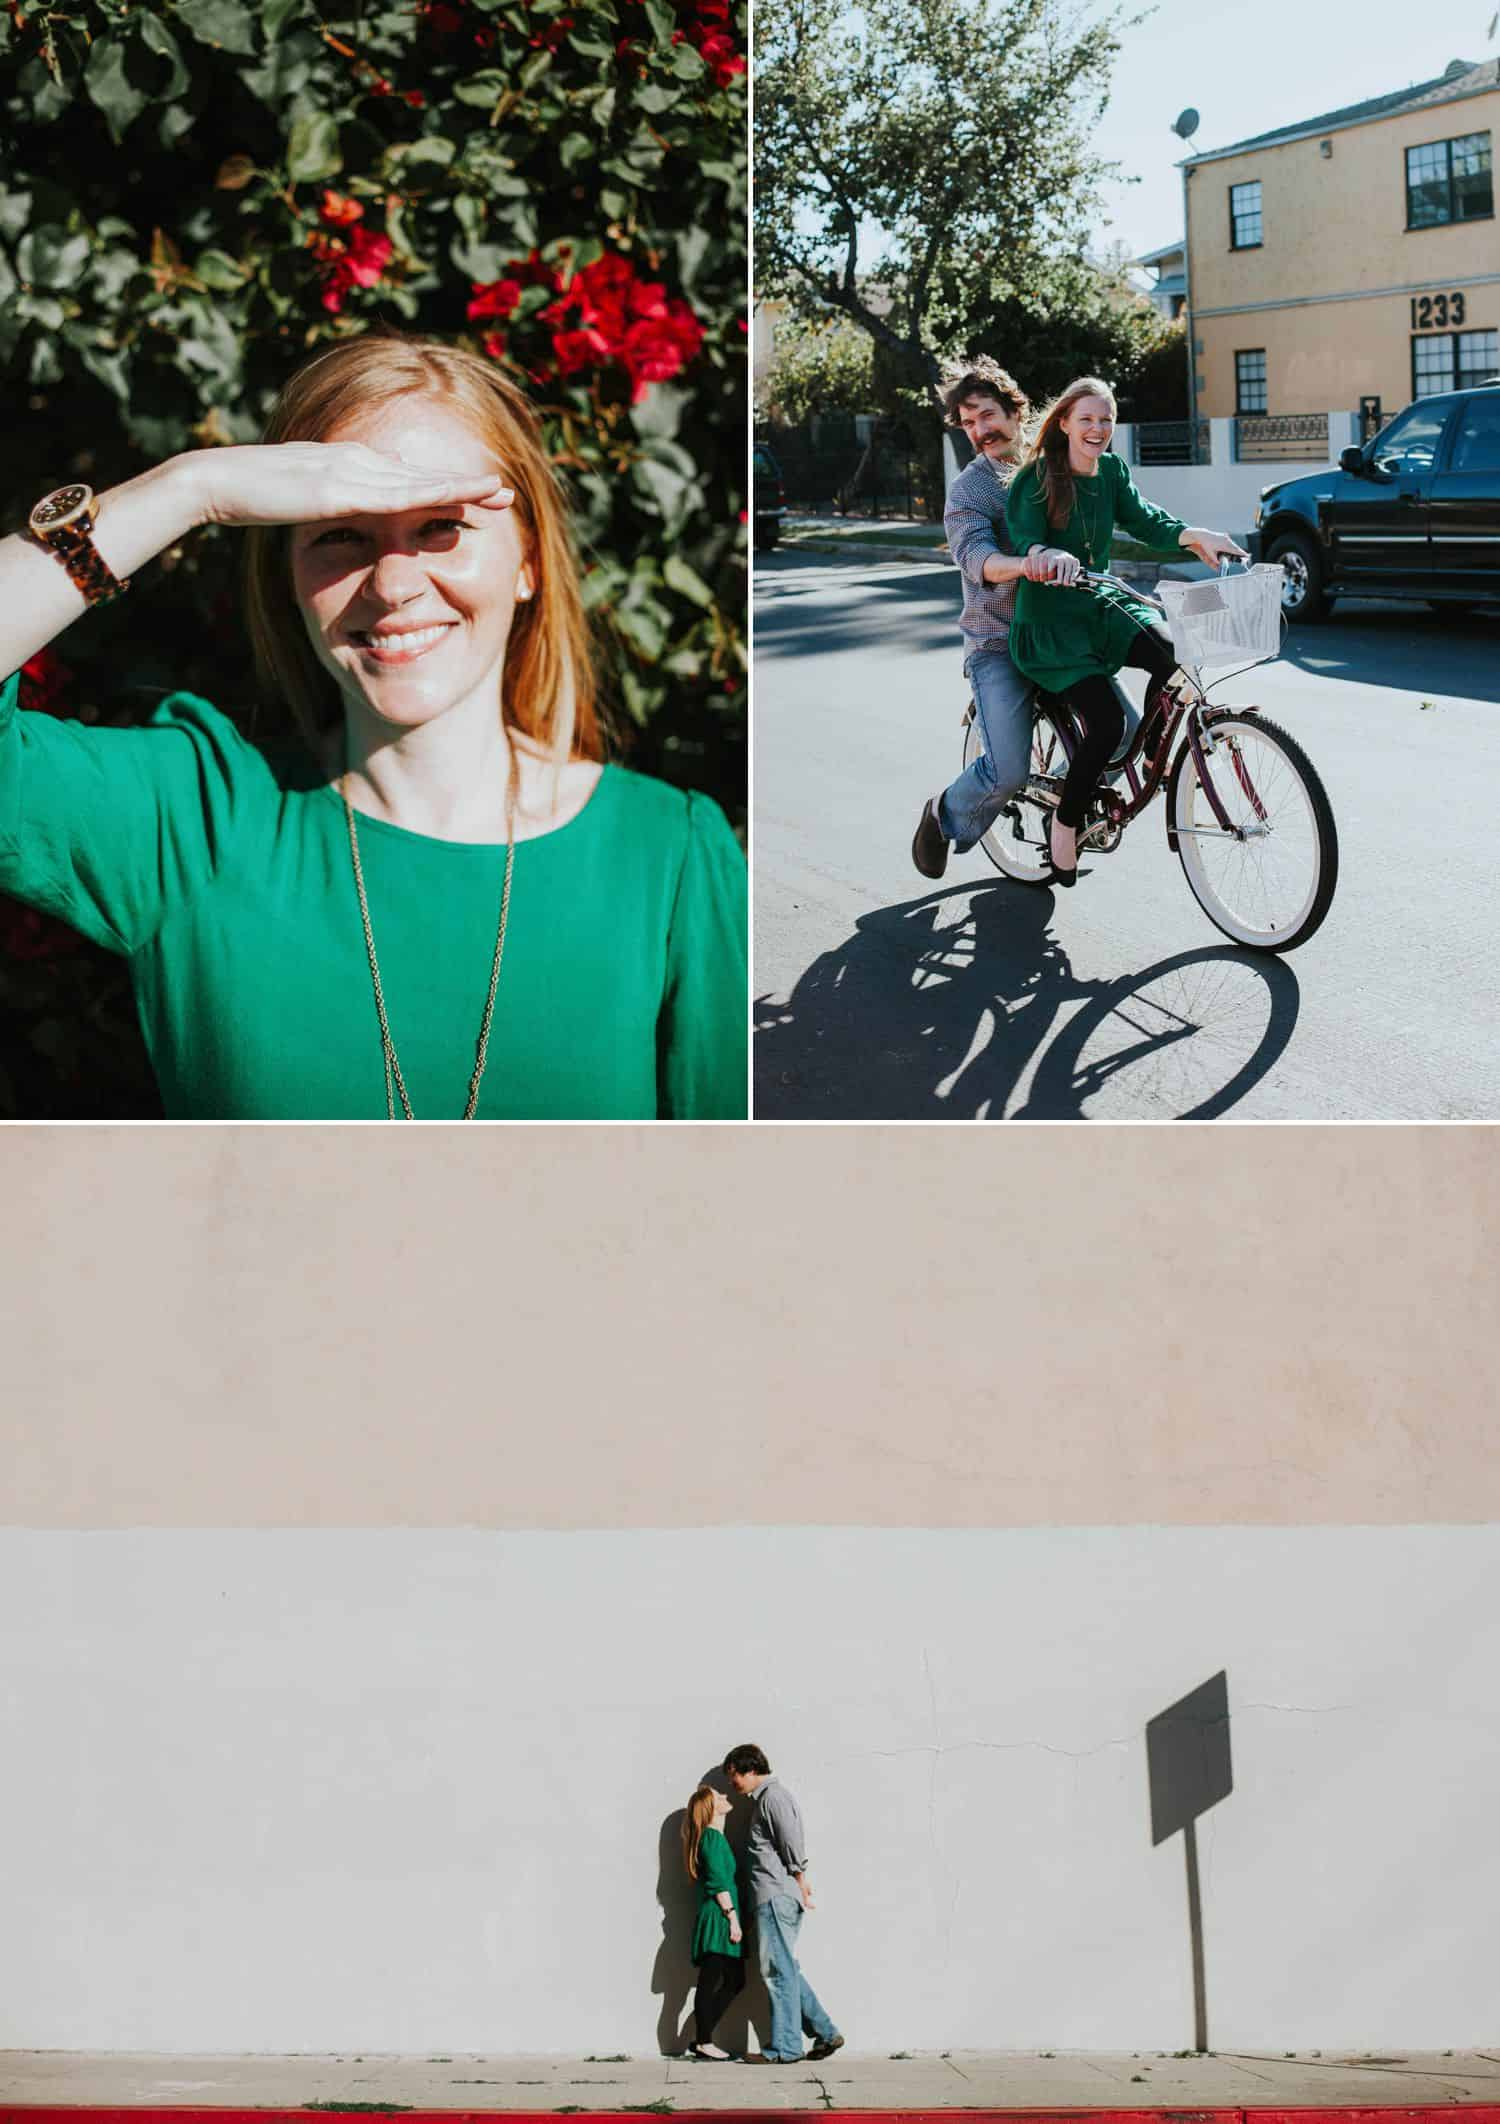 How To Make A Photography Website Your Dream Clients Can't Resist: An engaged couple explores their city by foot and by bike.